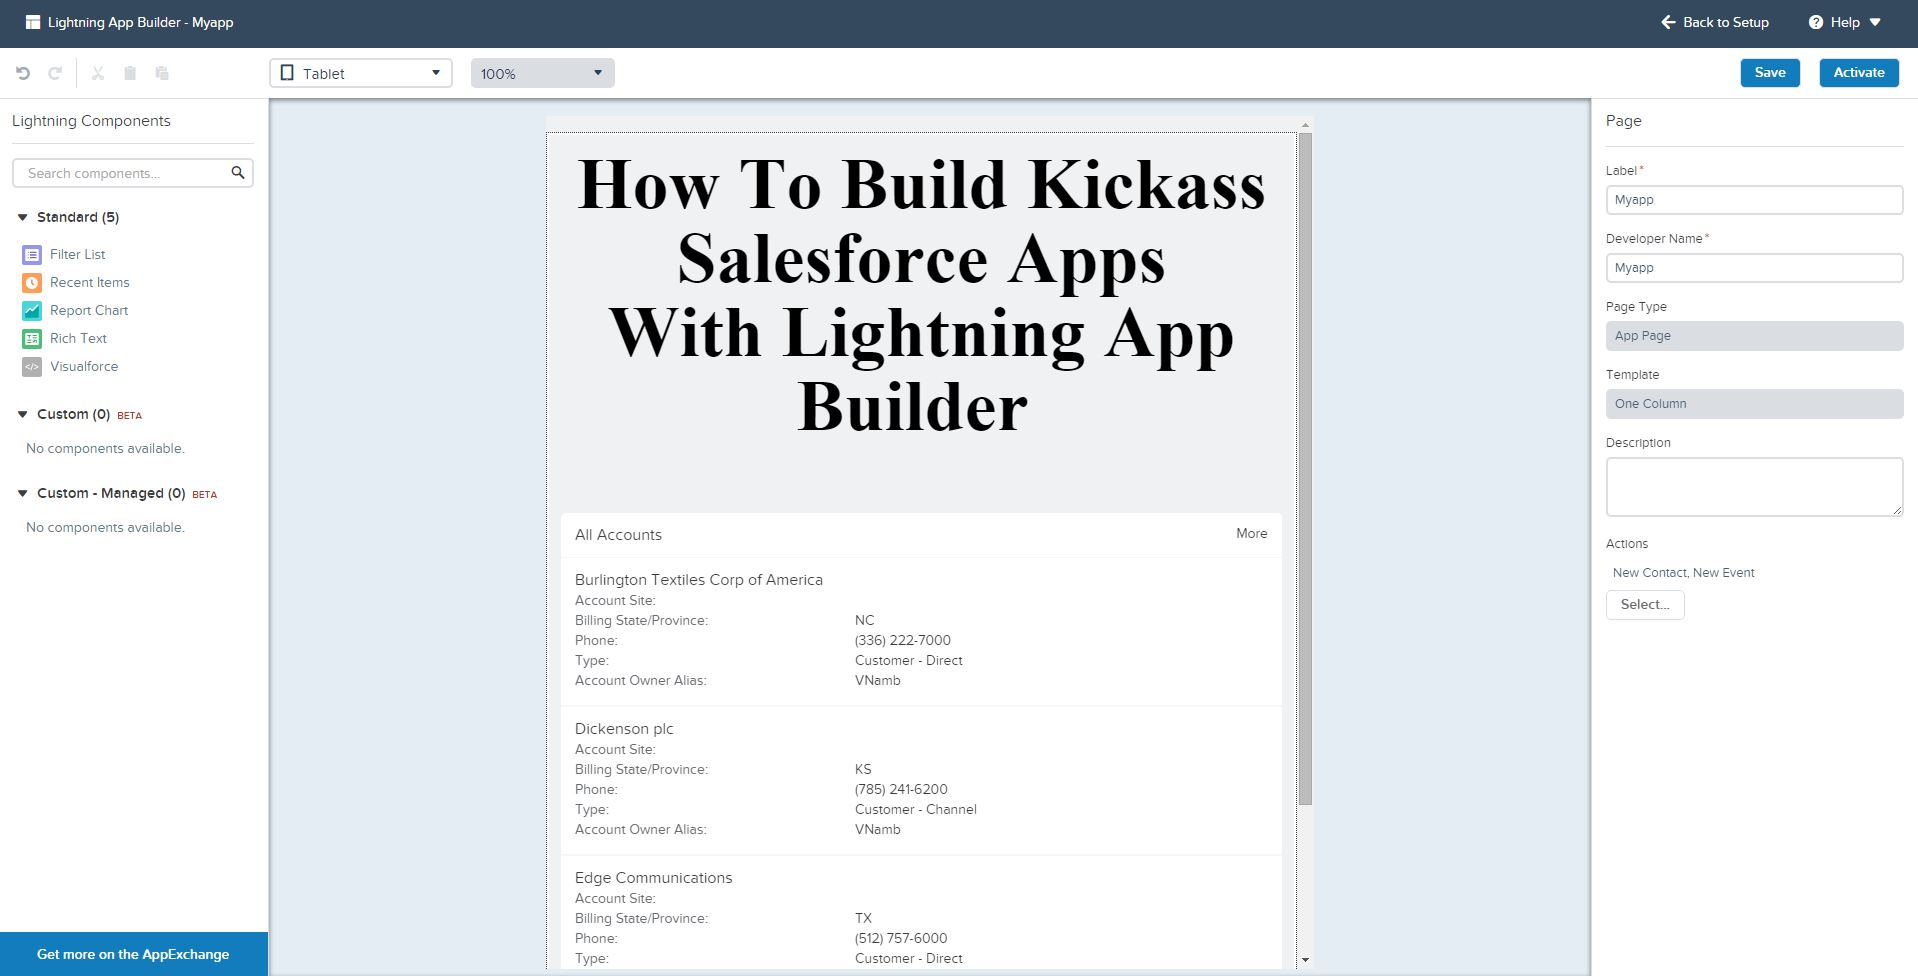 How To Build Kickass Salesforce Apps With Lightning App Builder